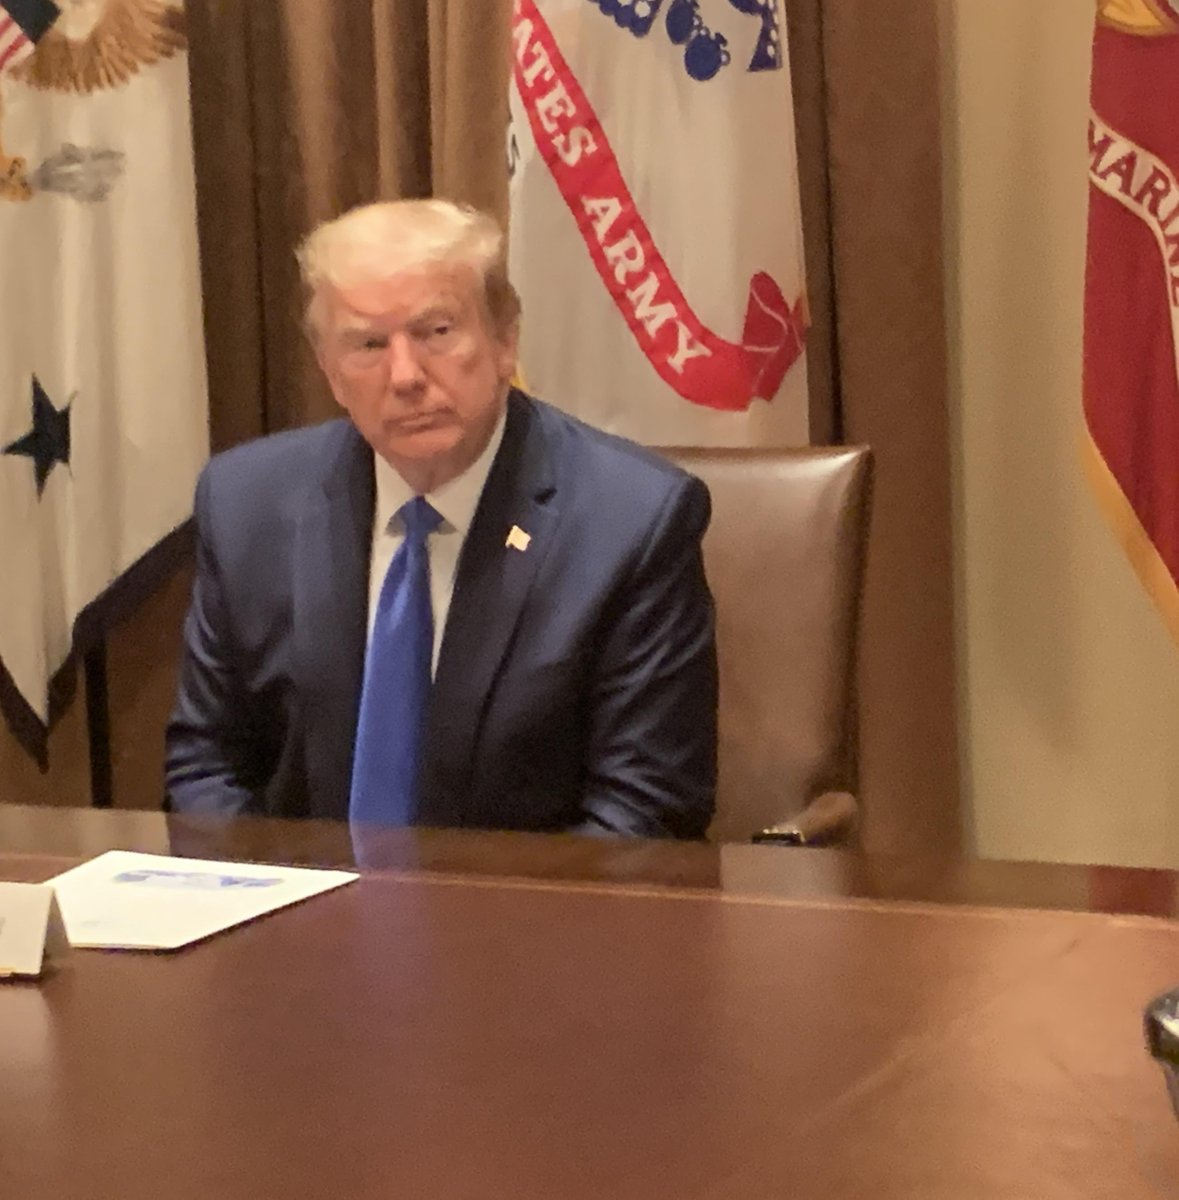 """""""Very, very productive meeting"""" with Joint Chiefs of Staff """"discussing various things,"""" says @POTUS in relatively terse remarks in @WhiteHouse Cabinet Room. Uncharacteristically he declines to take any questions from the media pool. (No one except journalists wearing masks). https://t.co/609v0hG6ZJ"""